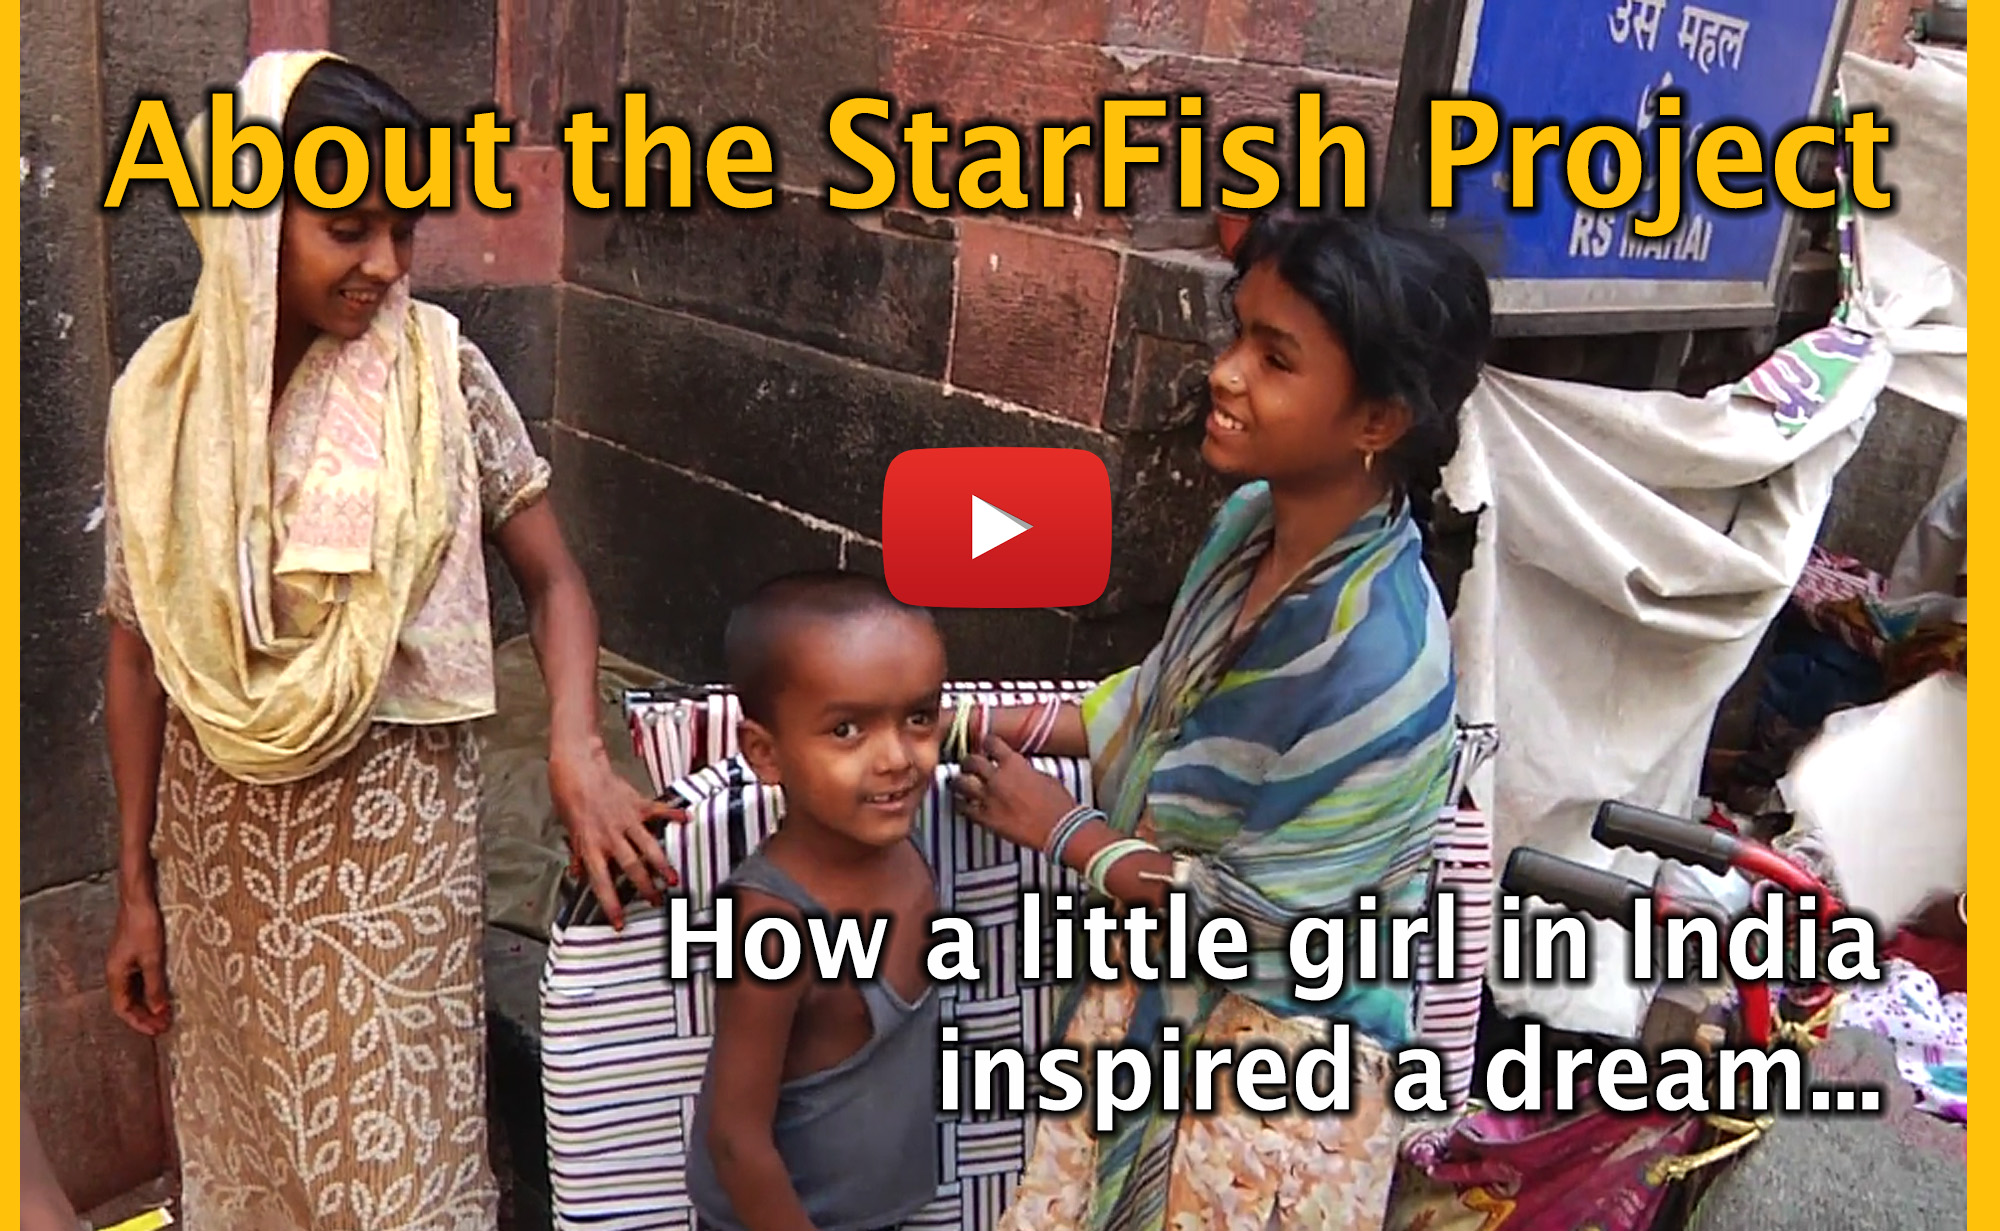 About the StarFish Video Project